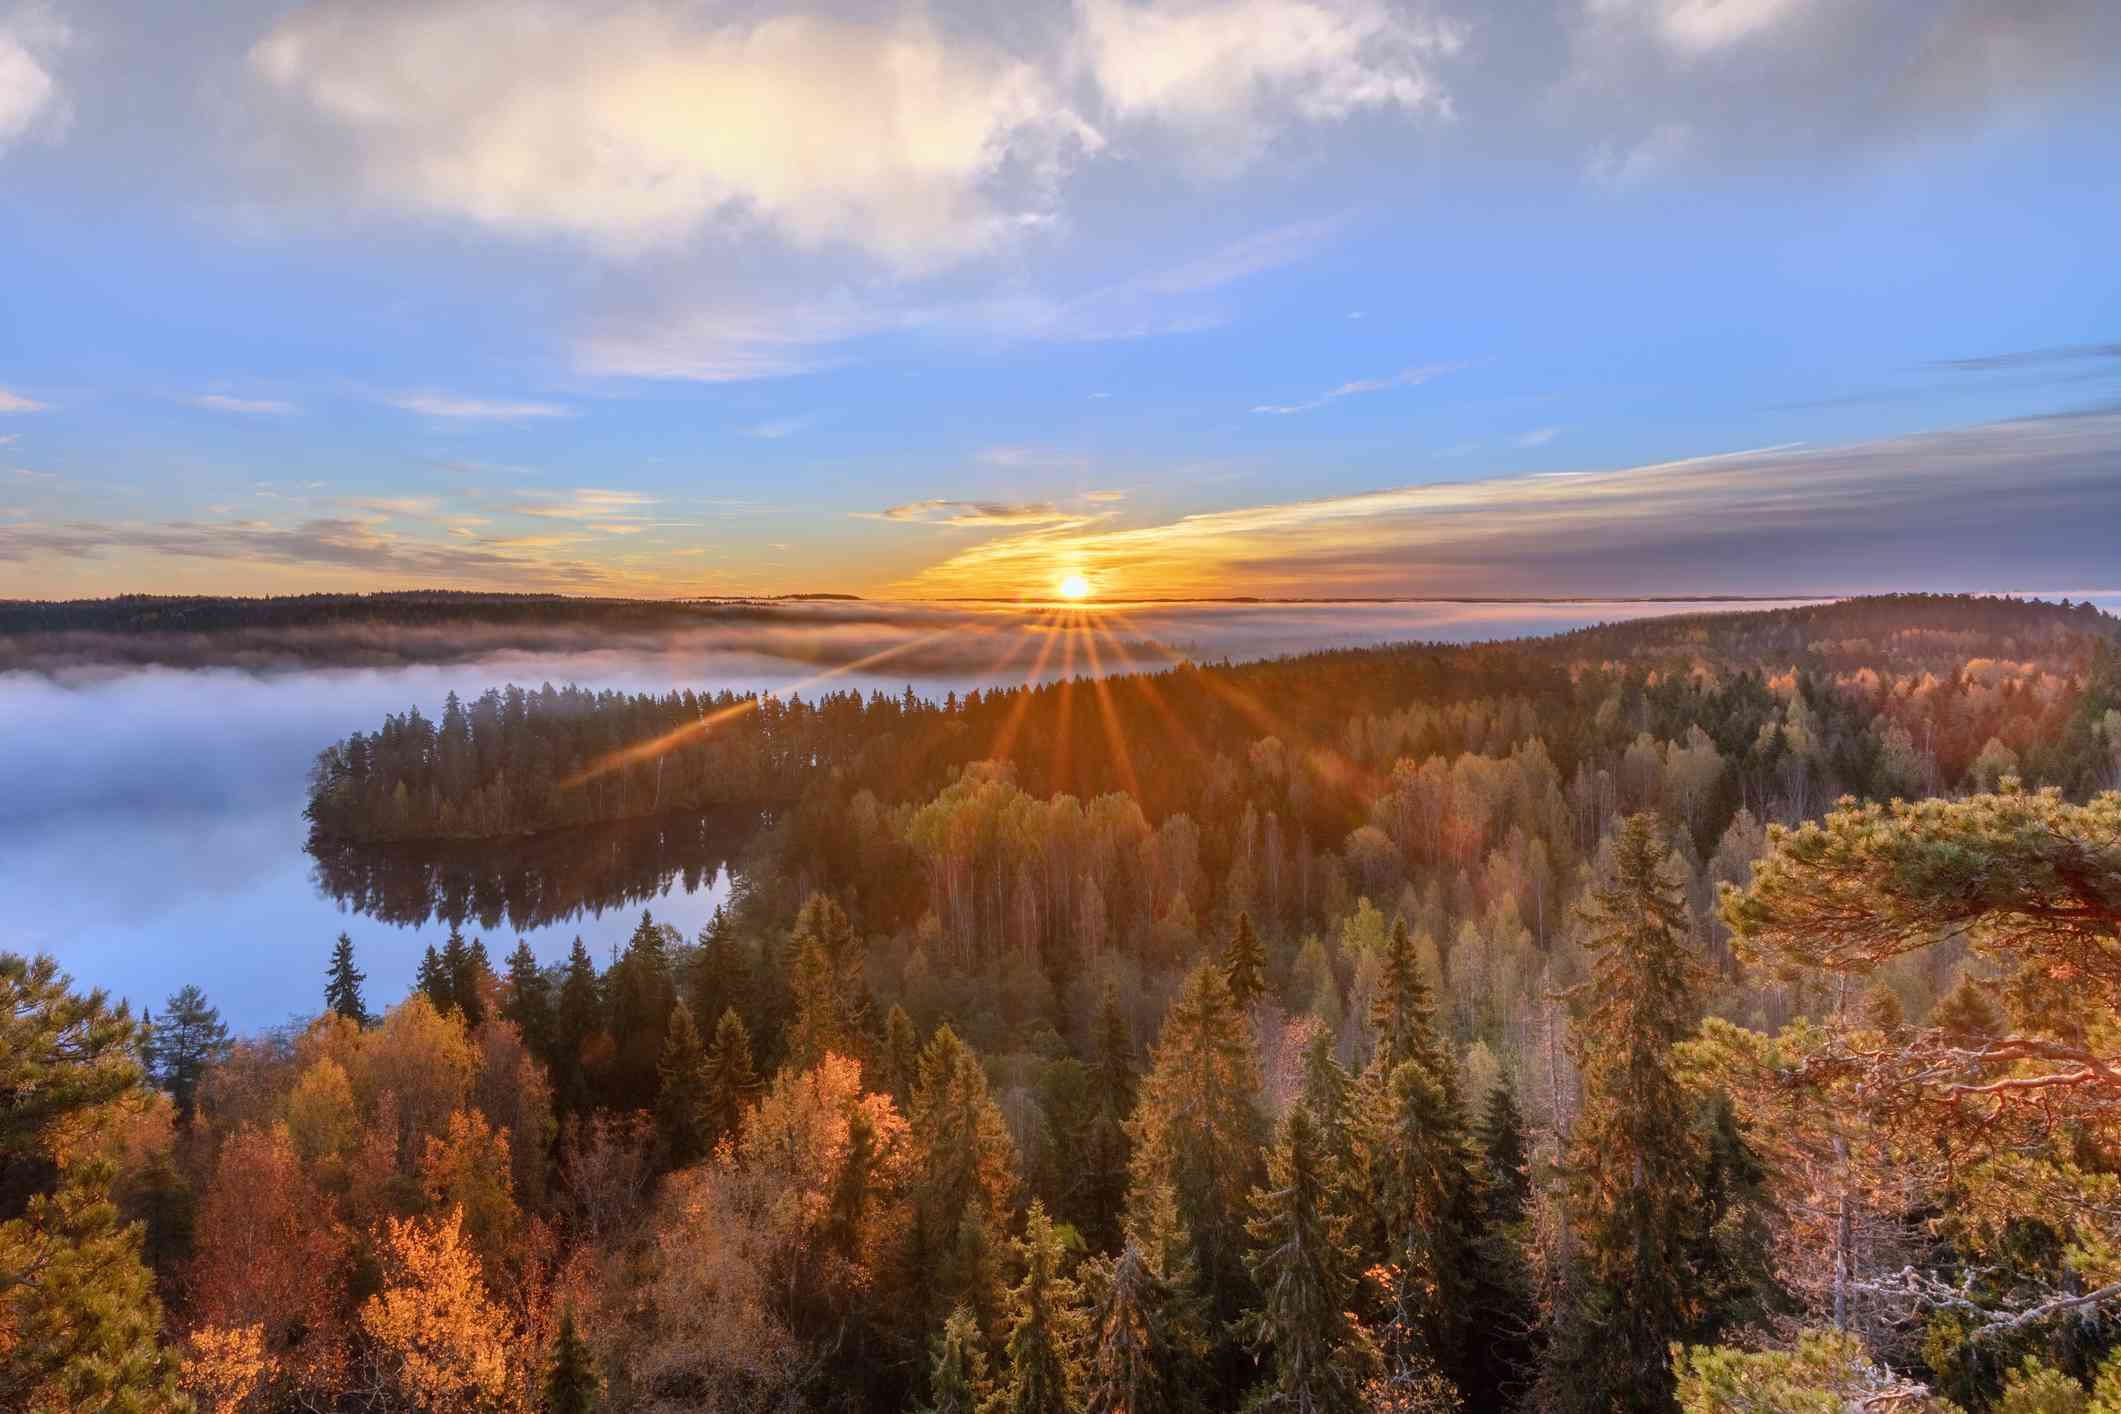 Aerial view of sun rays shining through a forest of autumn trees next to a lake at sunrise with blue skies and white clouds above in Aulanko, Hämeenlinna, Finland.